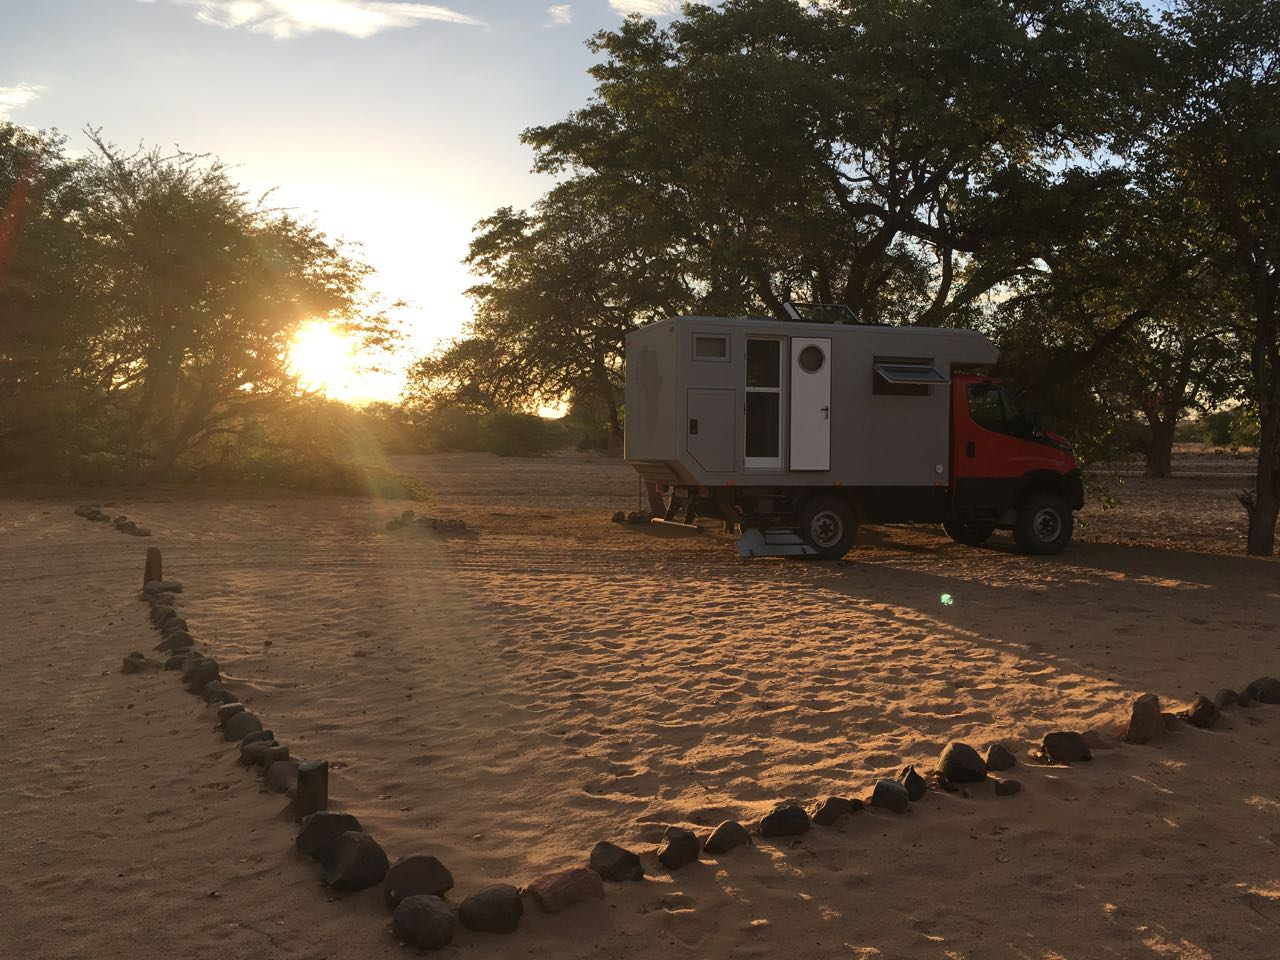 Abahuab Camping